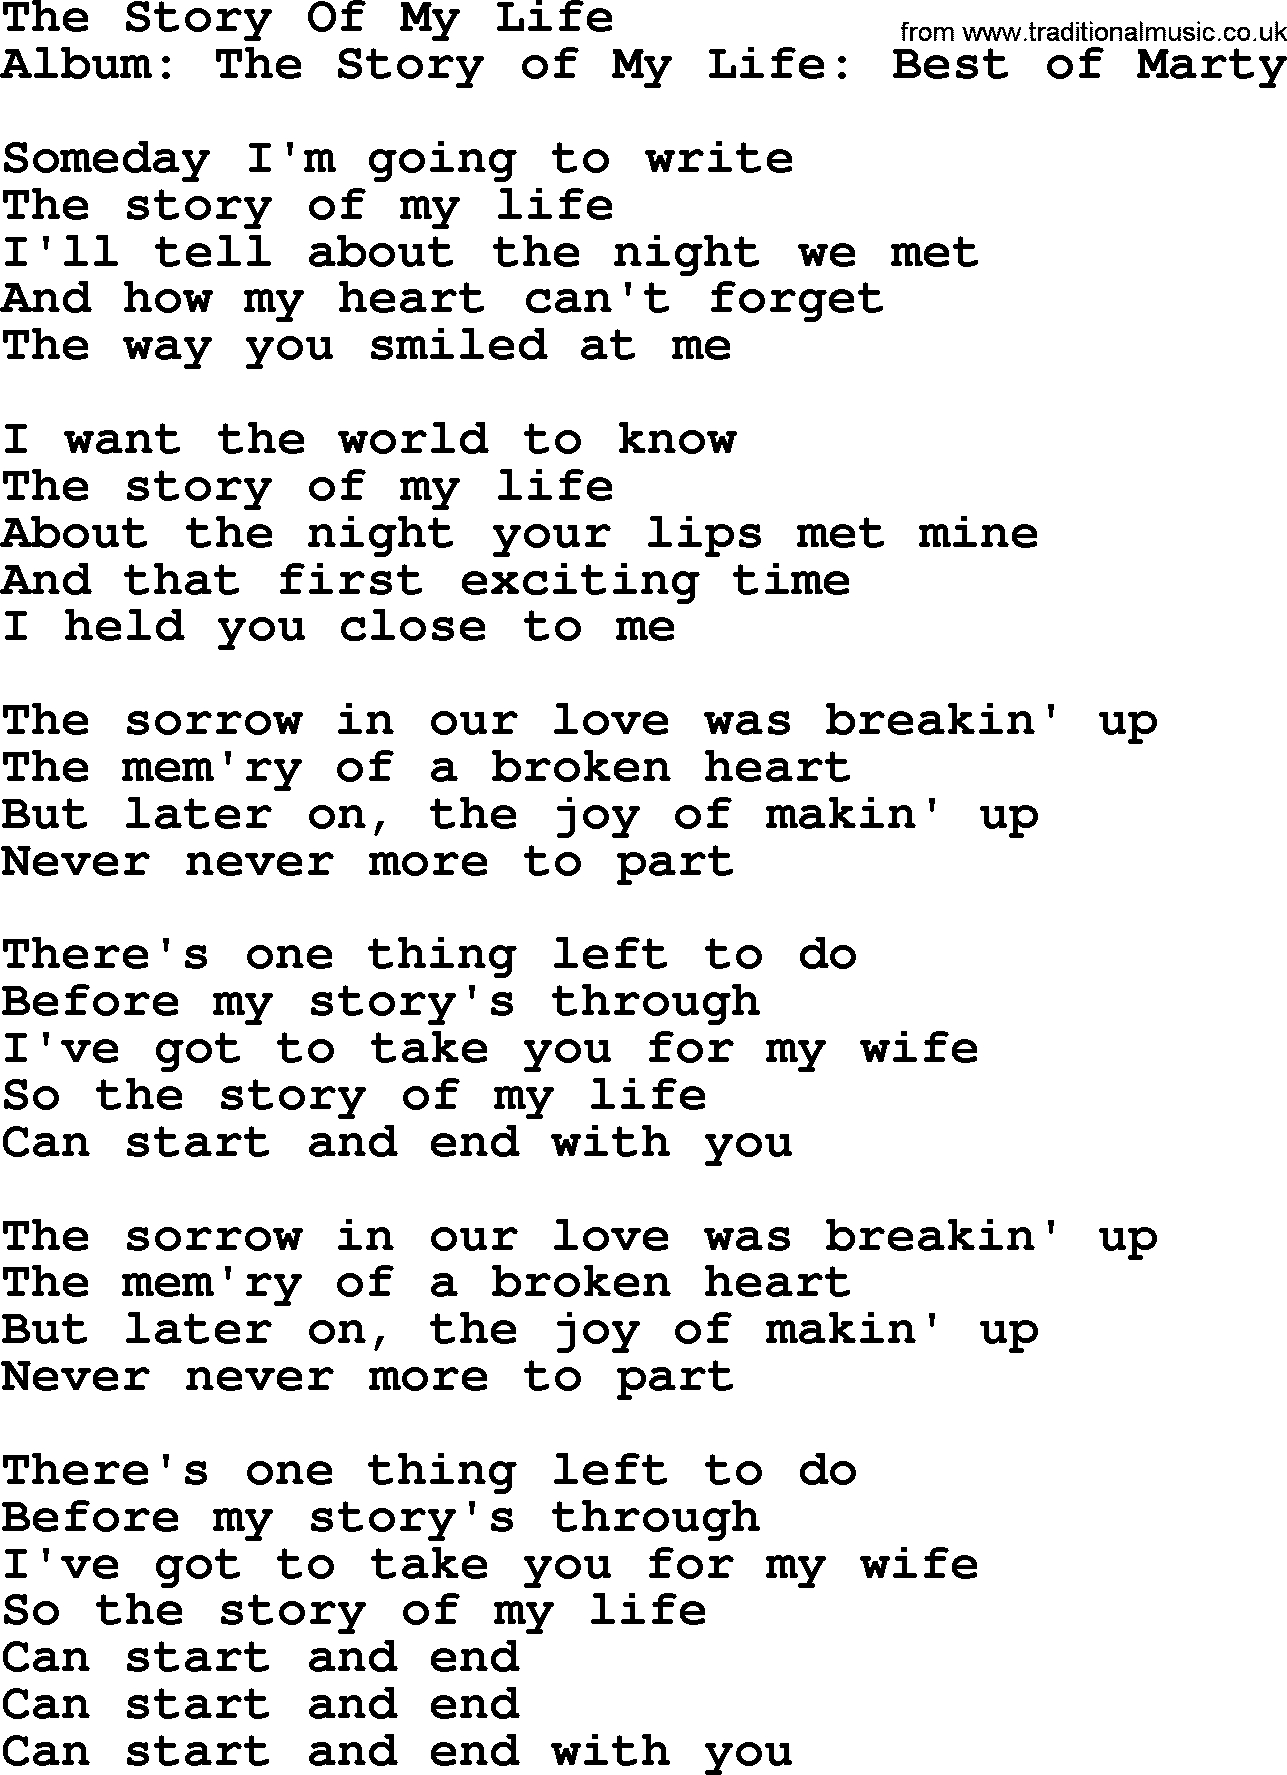 Story Of My Life Chords The Story Of My Life Marty Robbins Lyrics